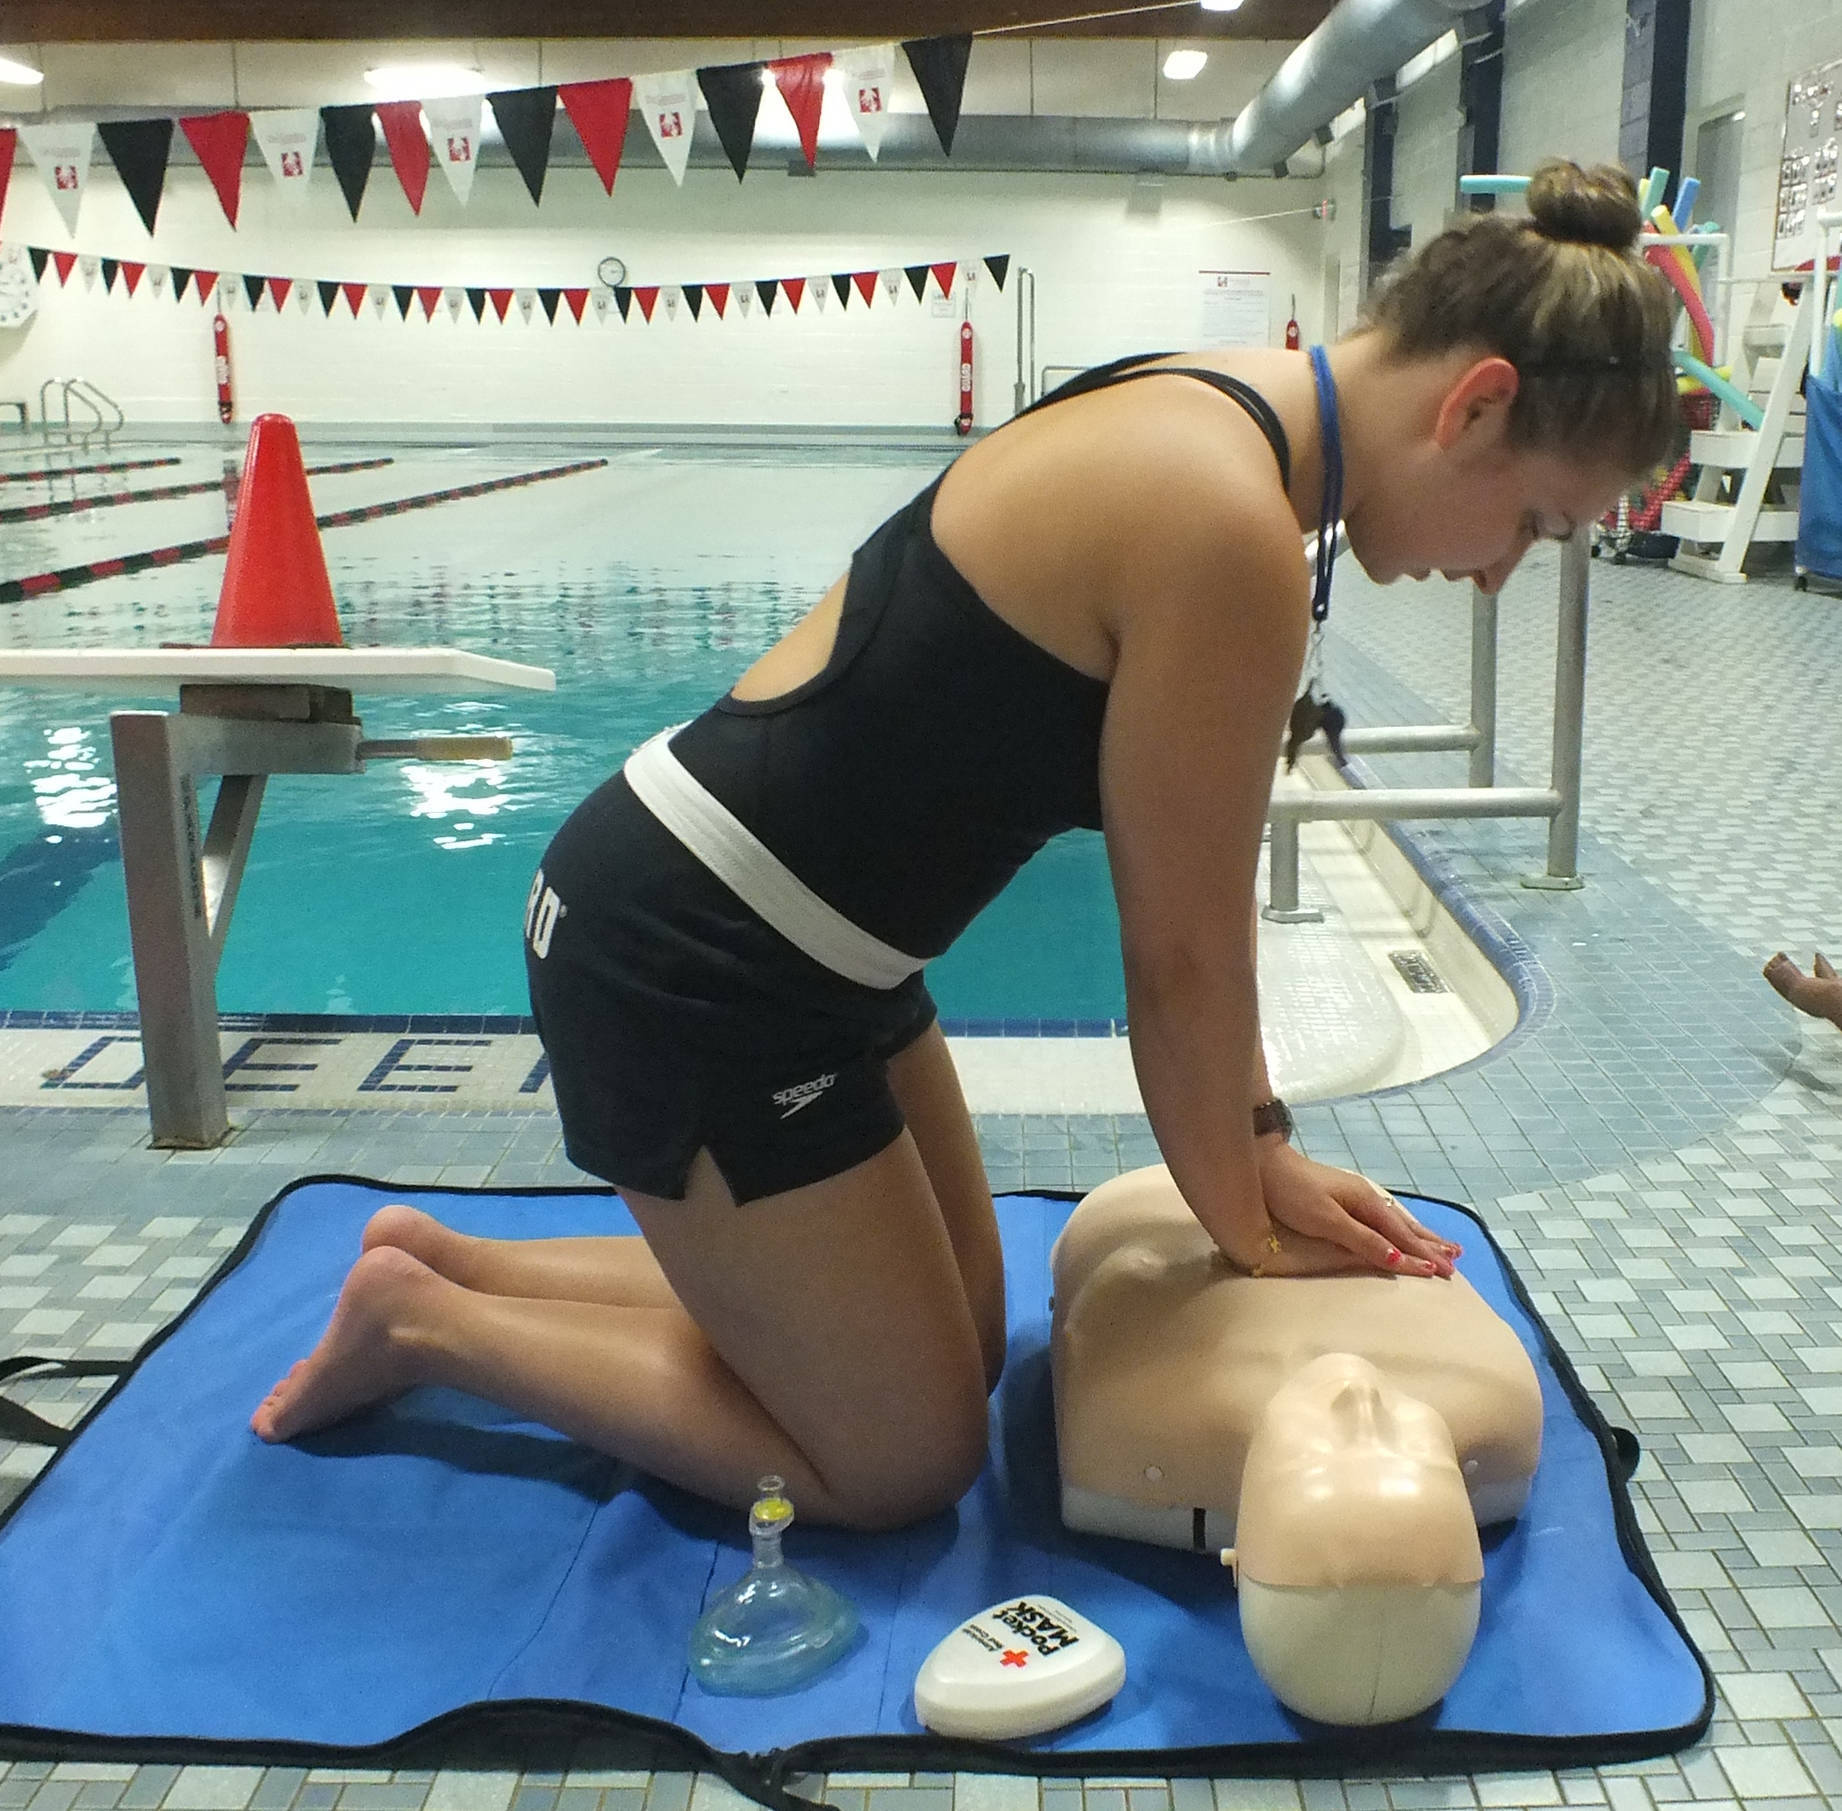 lifeguard certification course offered at the connection chatham summer is just around the corner and now is the time for future lifeguards to get their certifications this the connection is holding a red cross